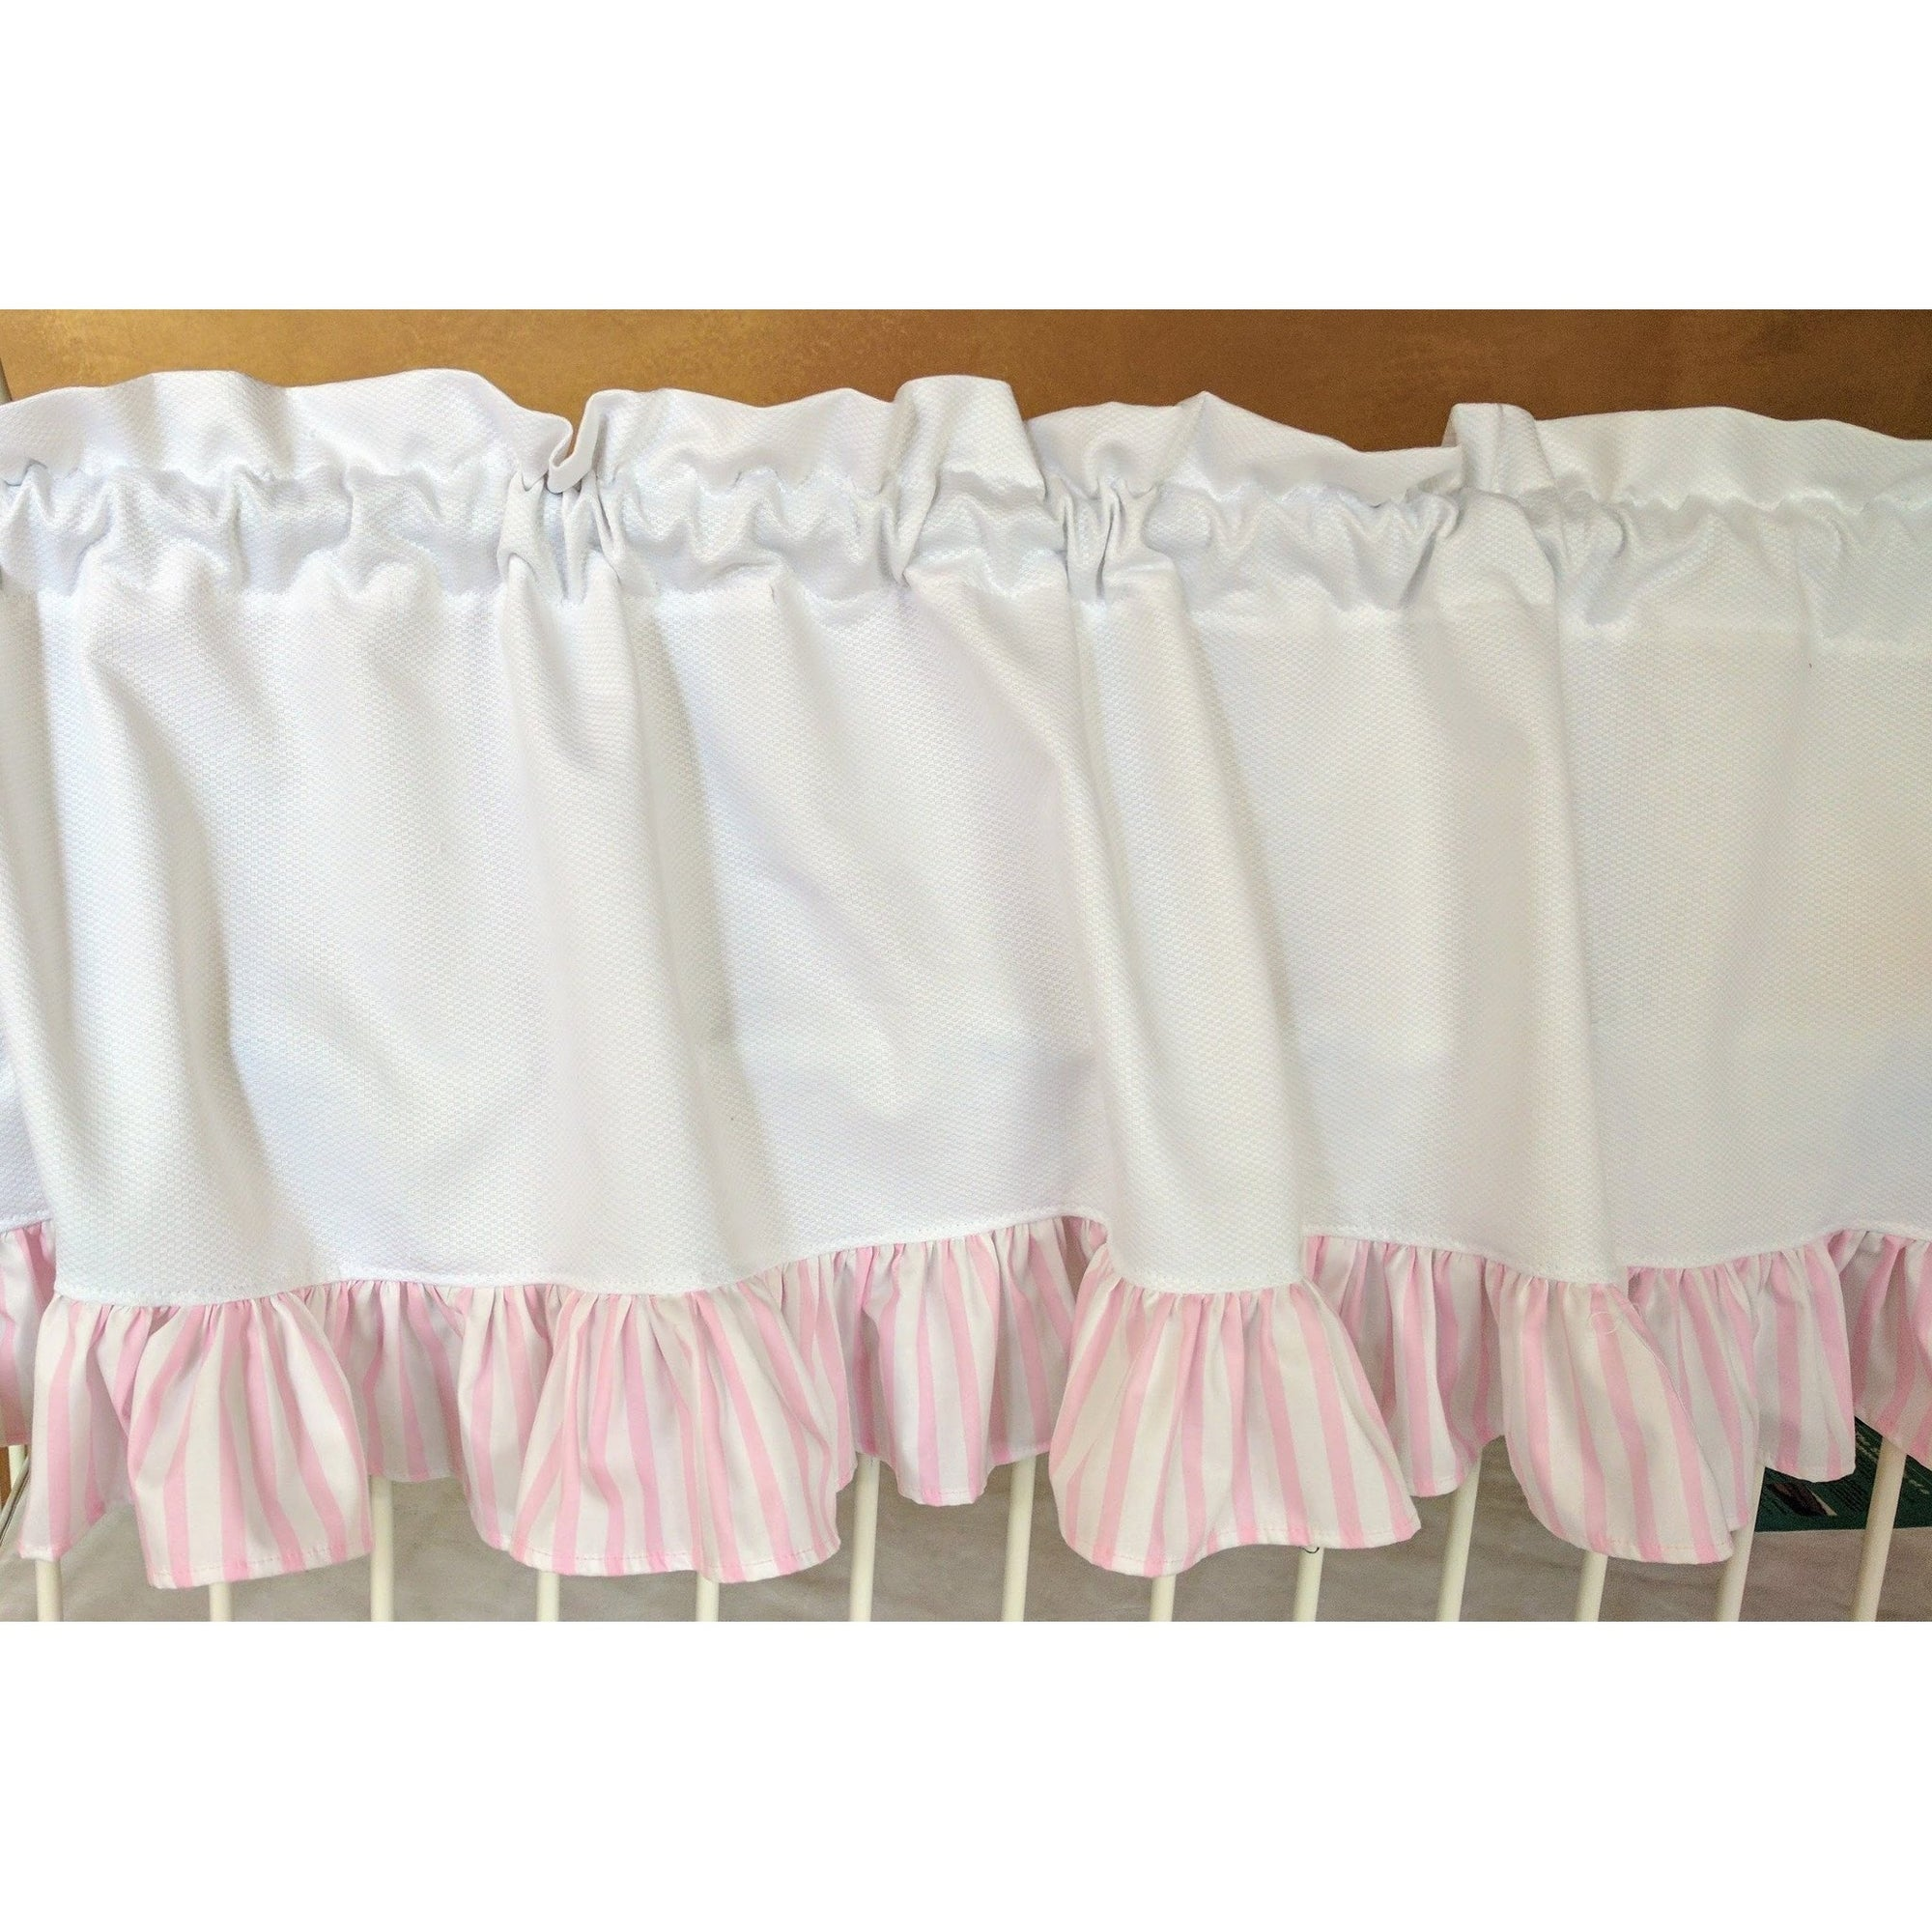 Curtain Panels | White Pique with Pink Stripe Ruffles-Curtain Panels-Jack and Jill Boutique